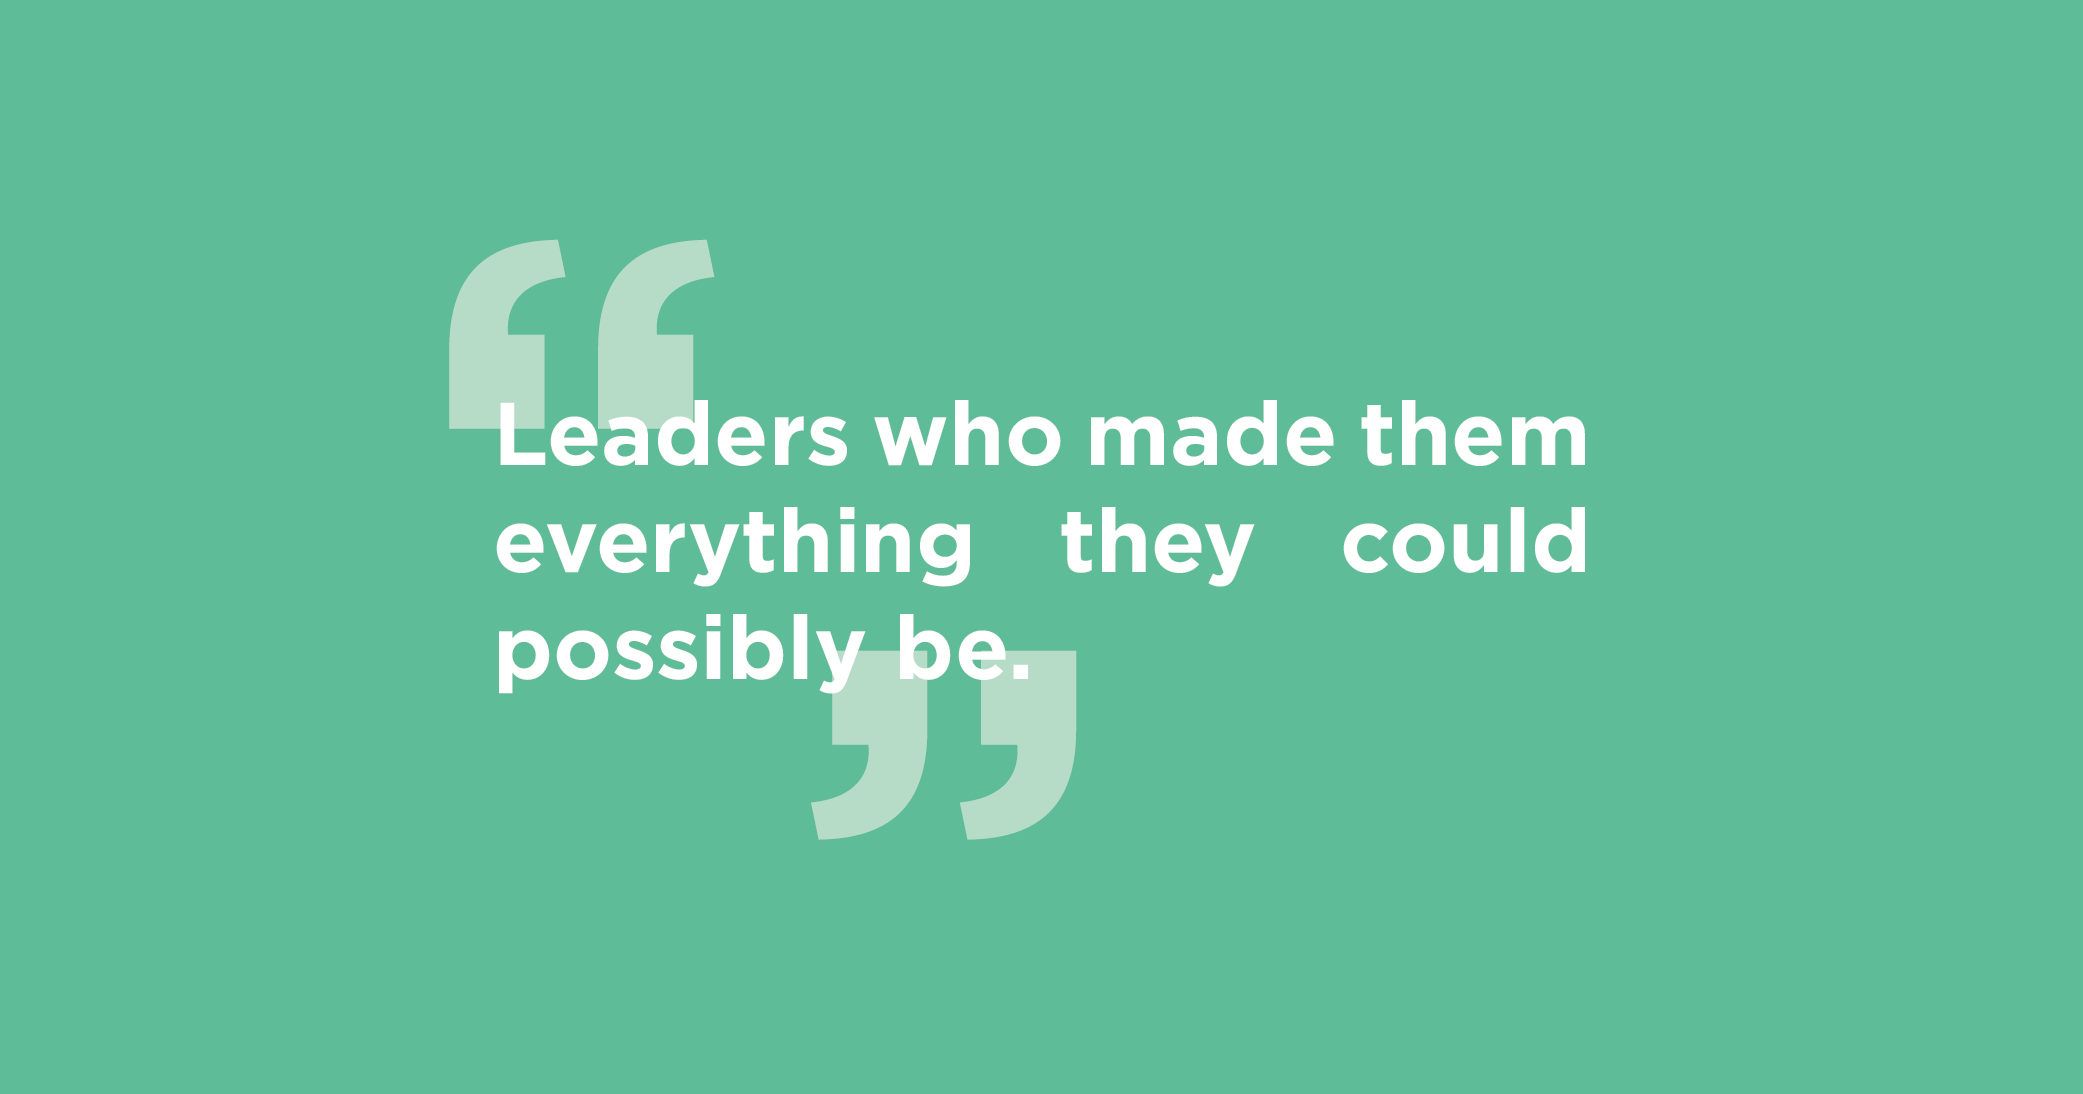 leaders quote from 13 minutes to the moon.png